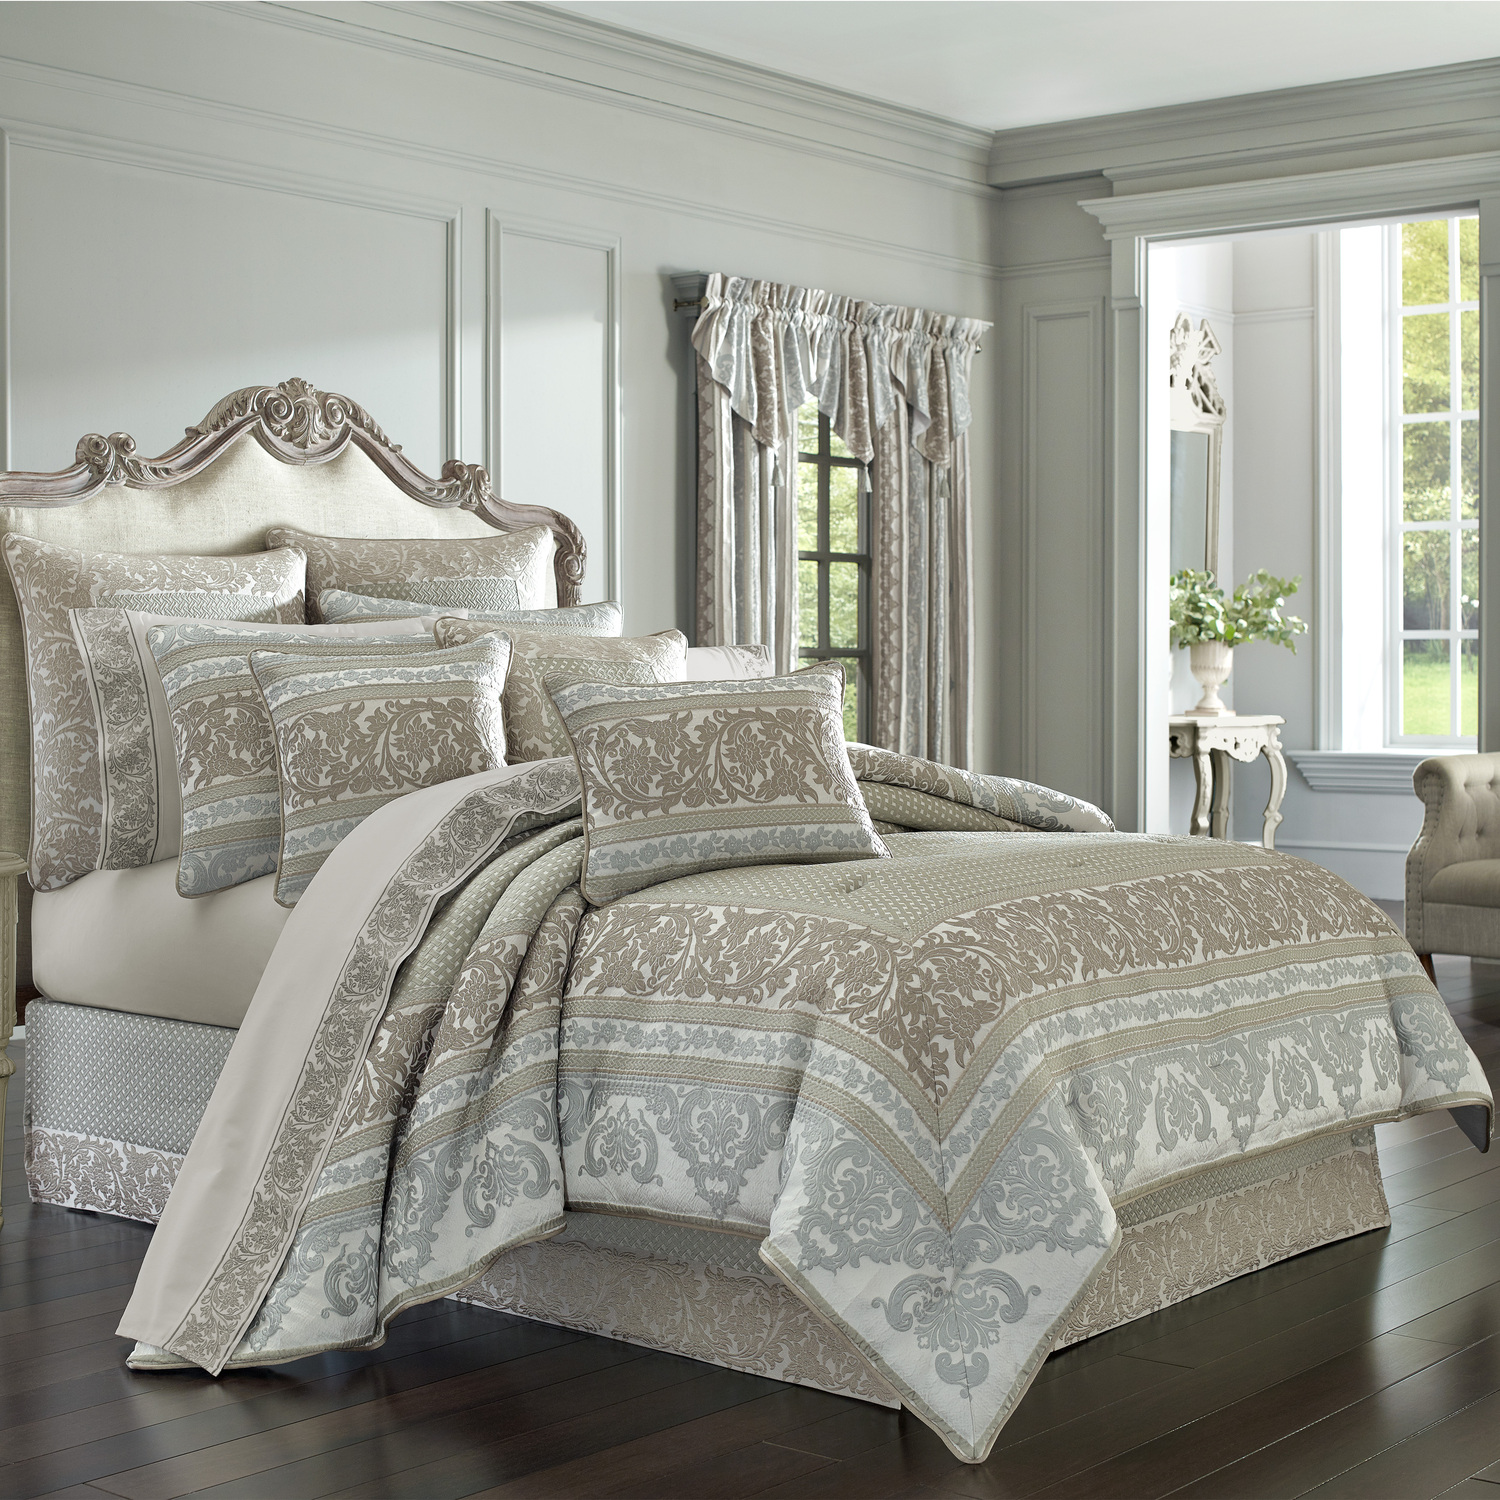 sets comforter new home red bedding girl set kohls breathtaking size blue hotel for full at grey of concept queen comfort and teen queencomfort brown bedcomforter king j pictures york